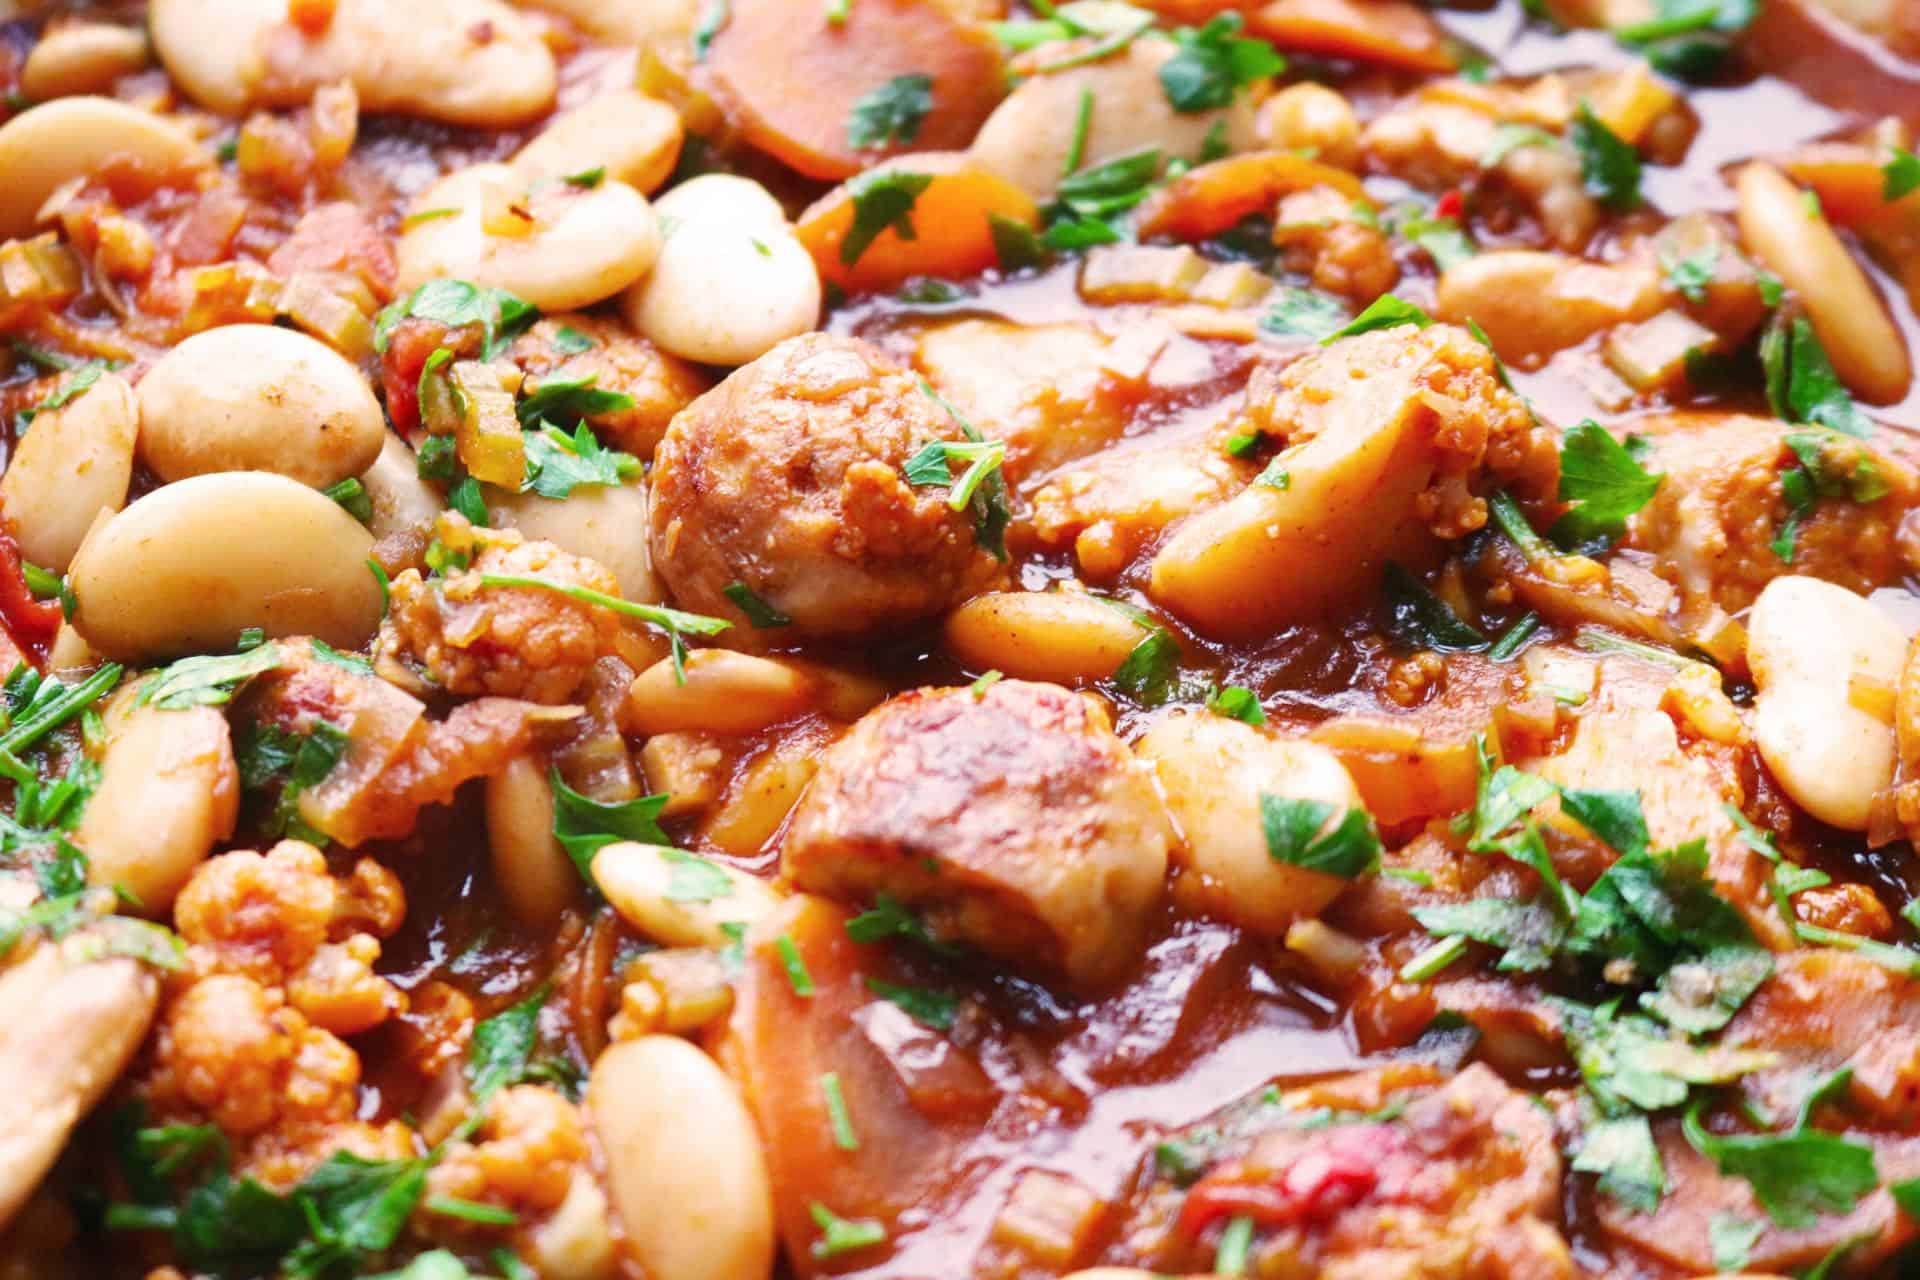 Spiced Bean and Banger Stew, Spiced Bean and Banger Stew